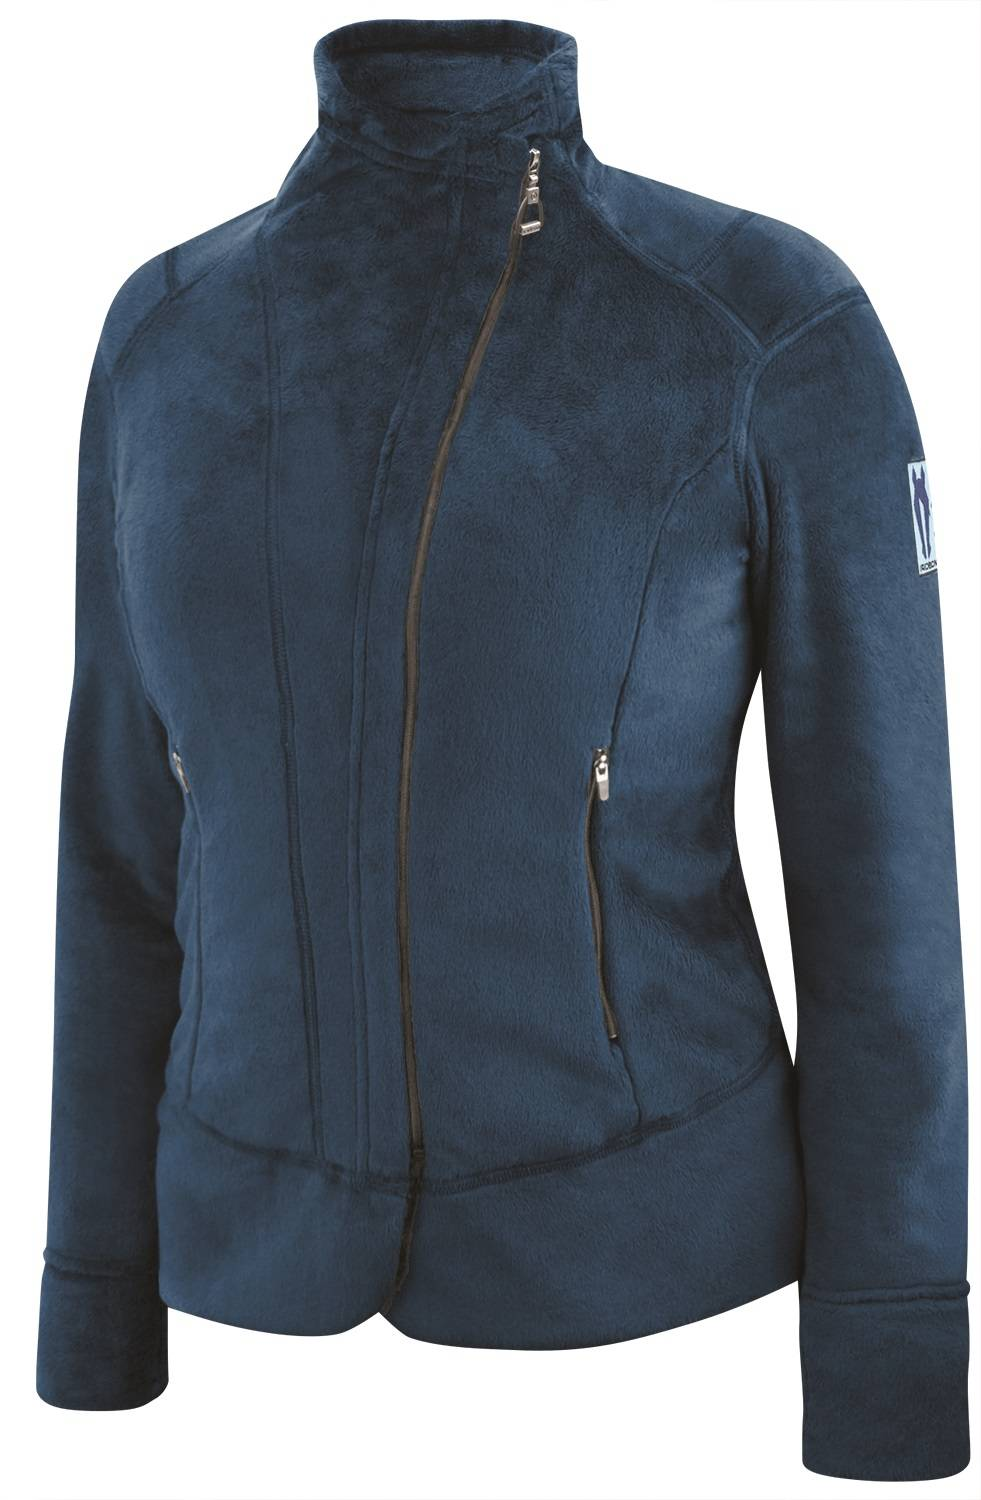 Outlet - Irideon Icelandic Fleece Jacket - Ladies, X-Large, Sapphire